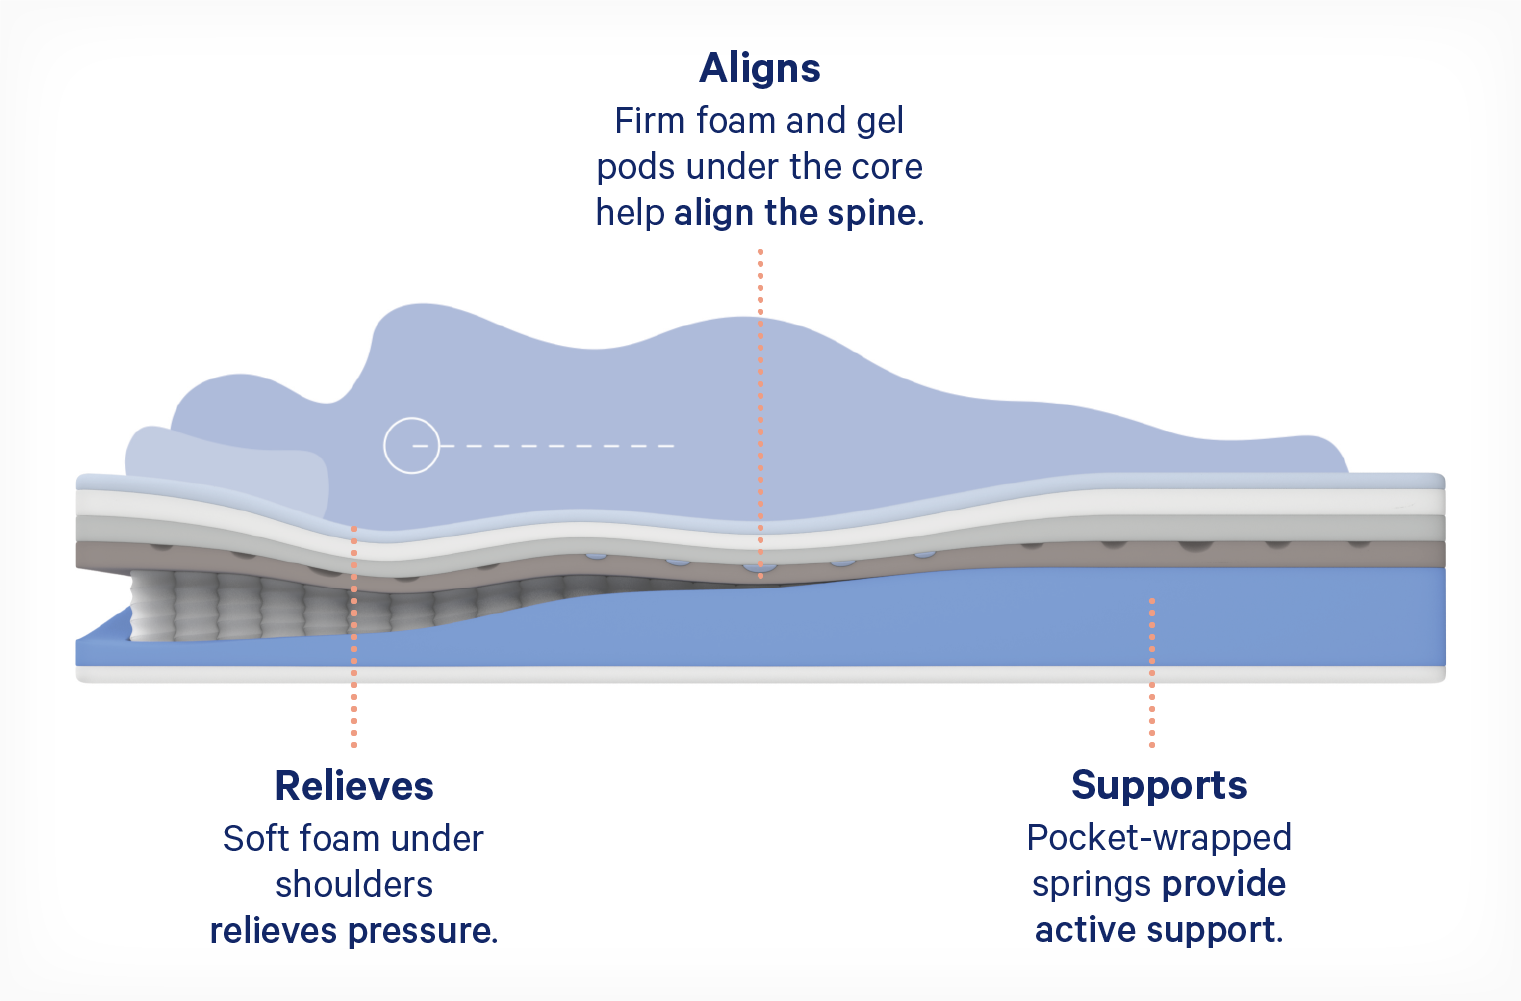 Diagram showing how a hybrid mattress aligns the spine and alleviates pressure